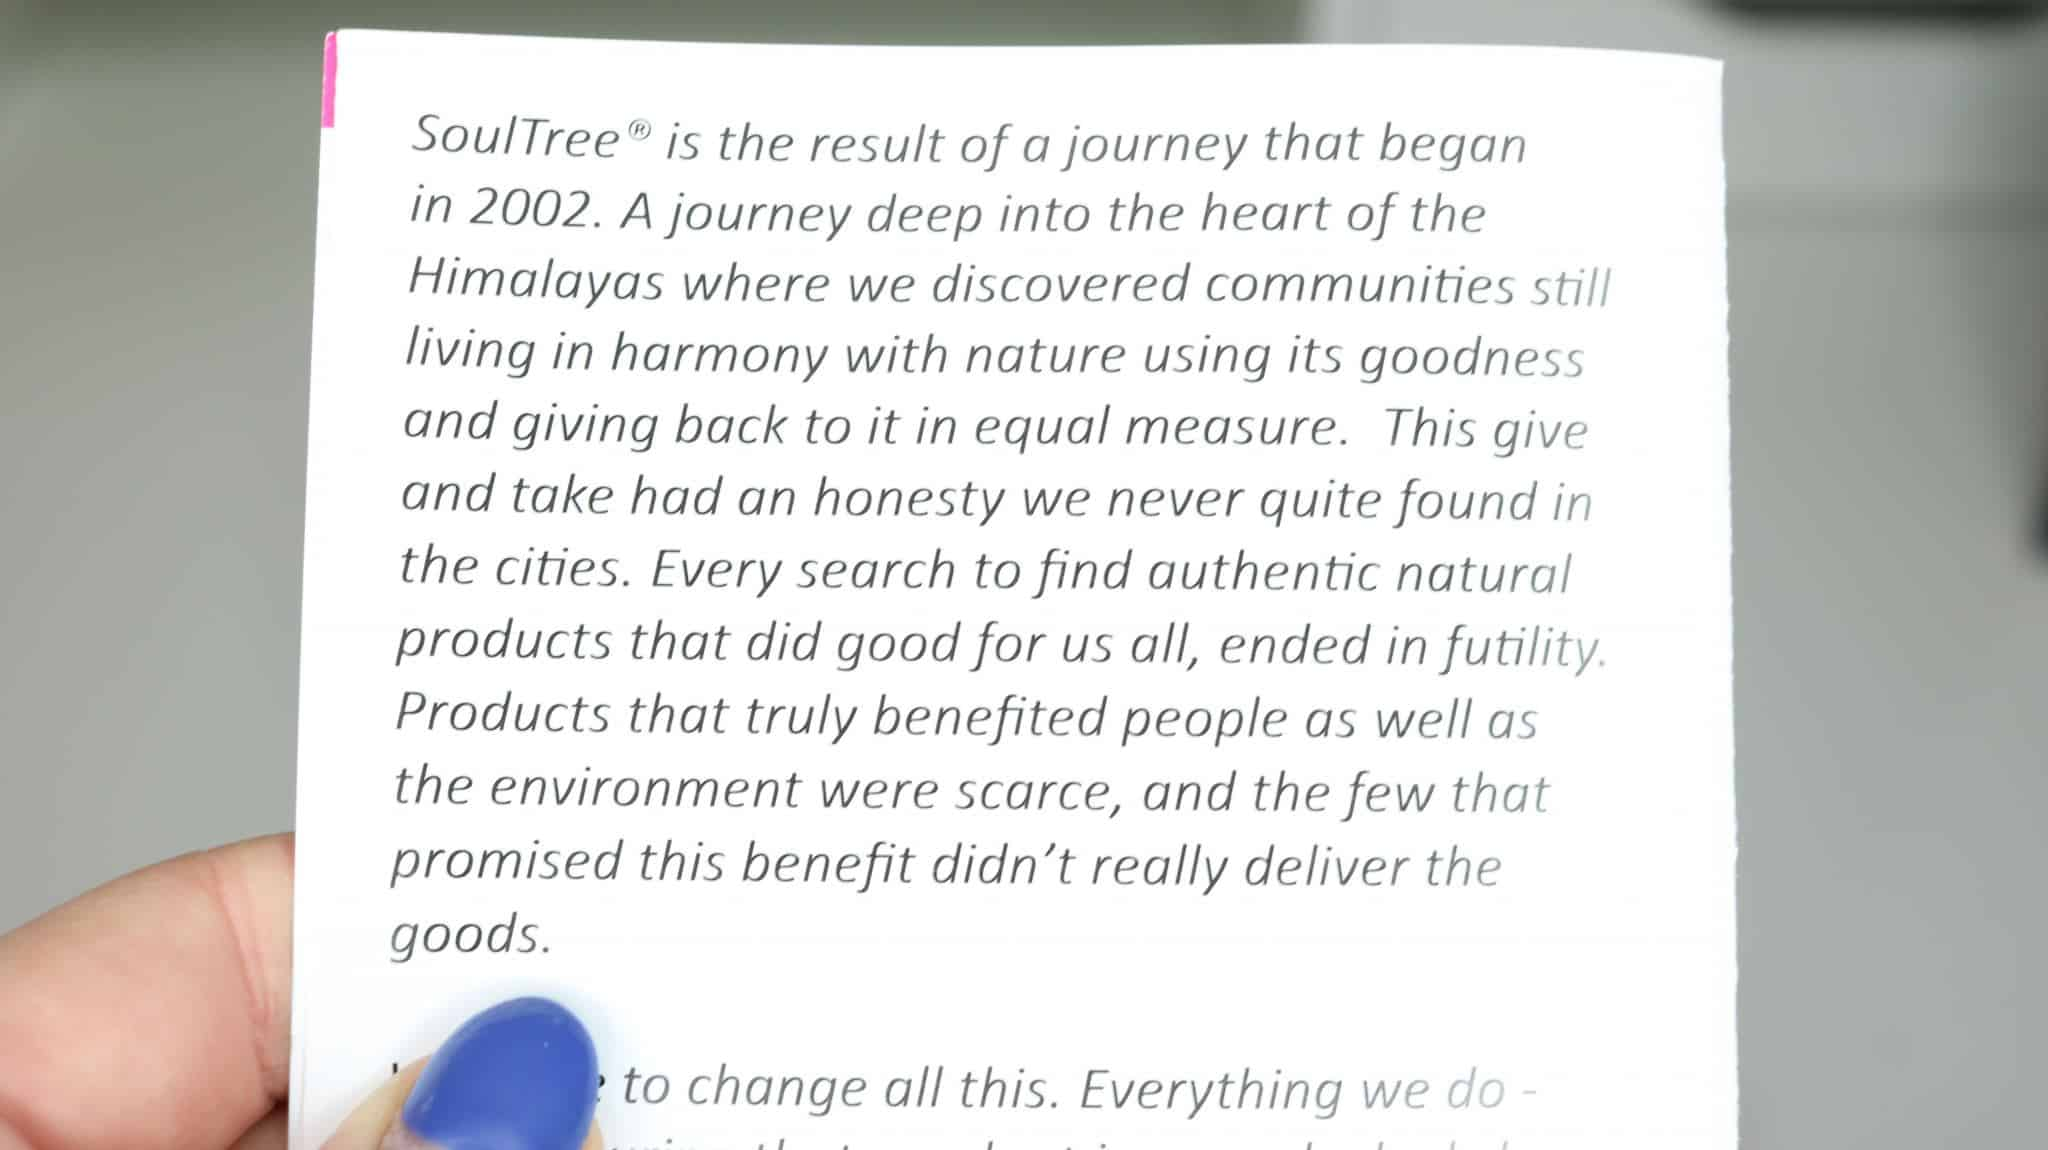 SoulTree History